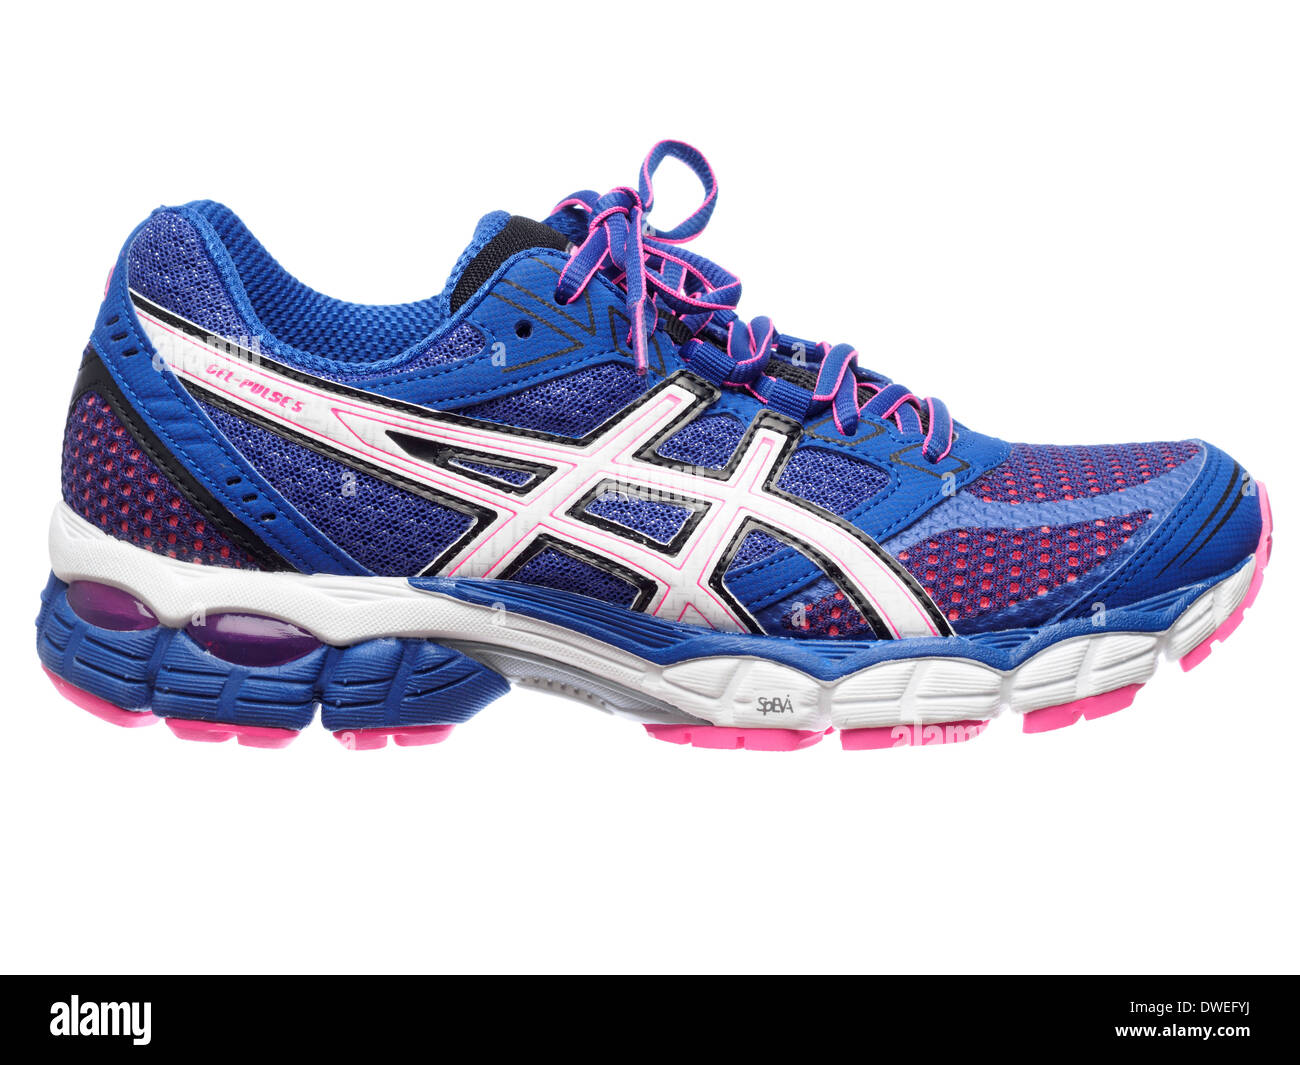 84be2587c10 Blue and pink Asics Gel Pulse 5 running shoe cut out isolated on white  background